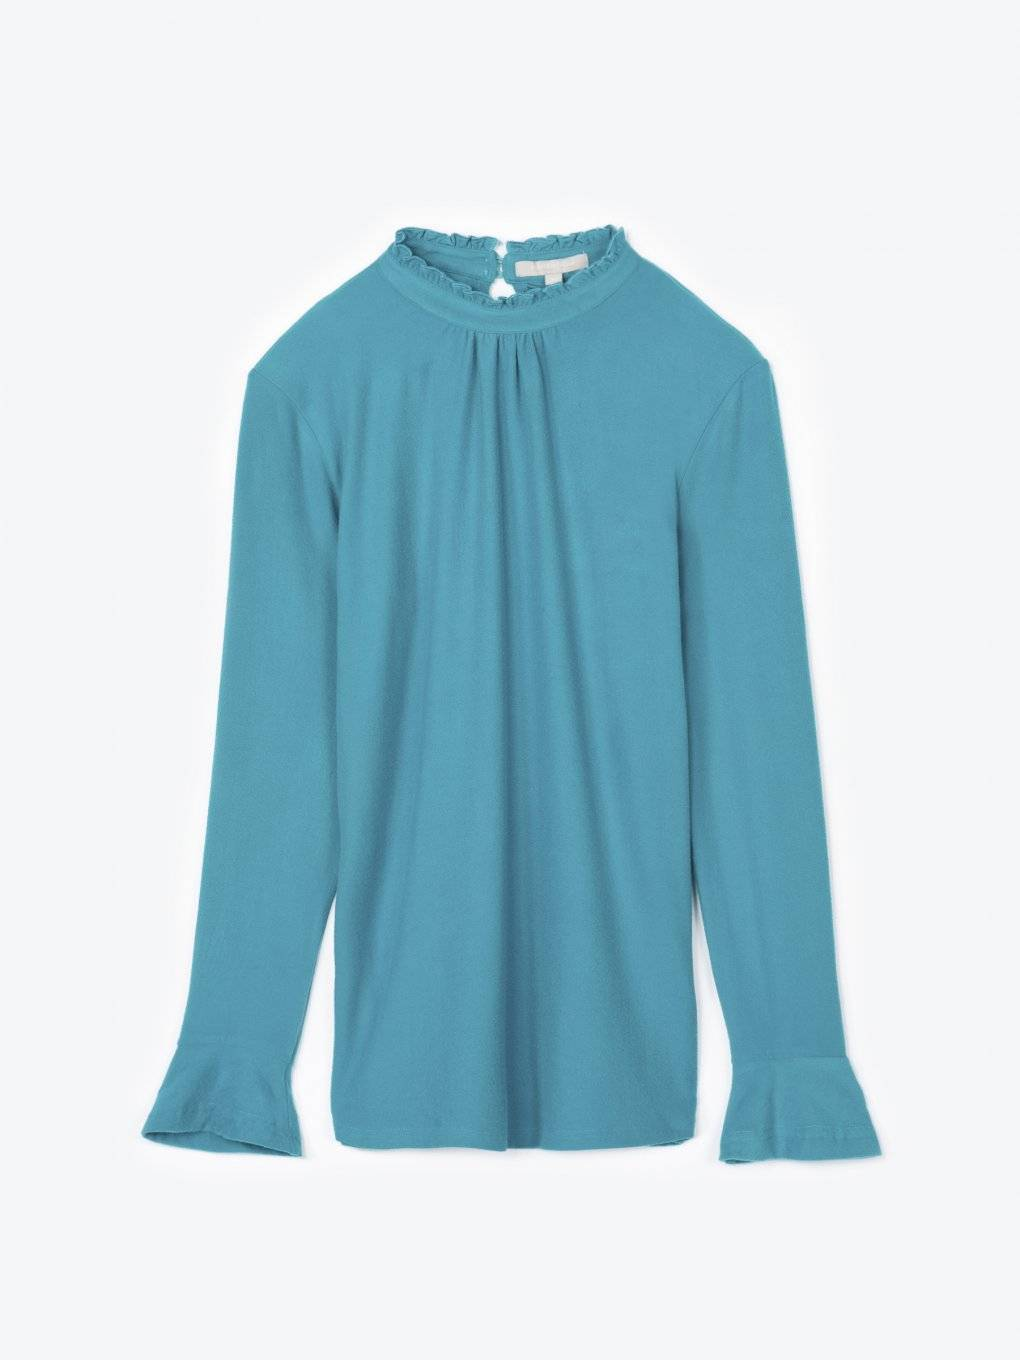 Top with high neck and ruffle sleeves